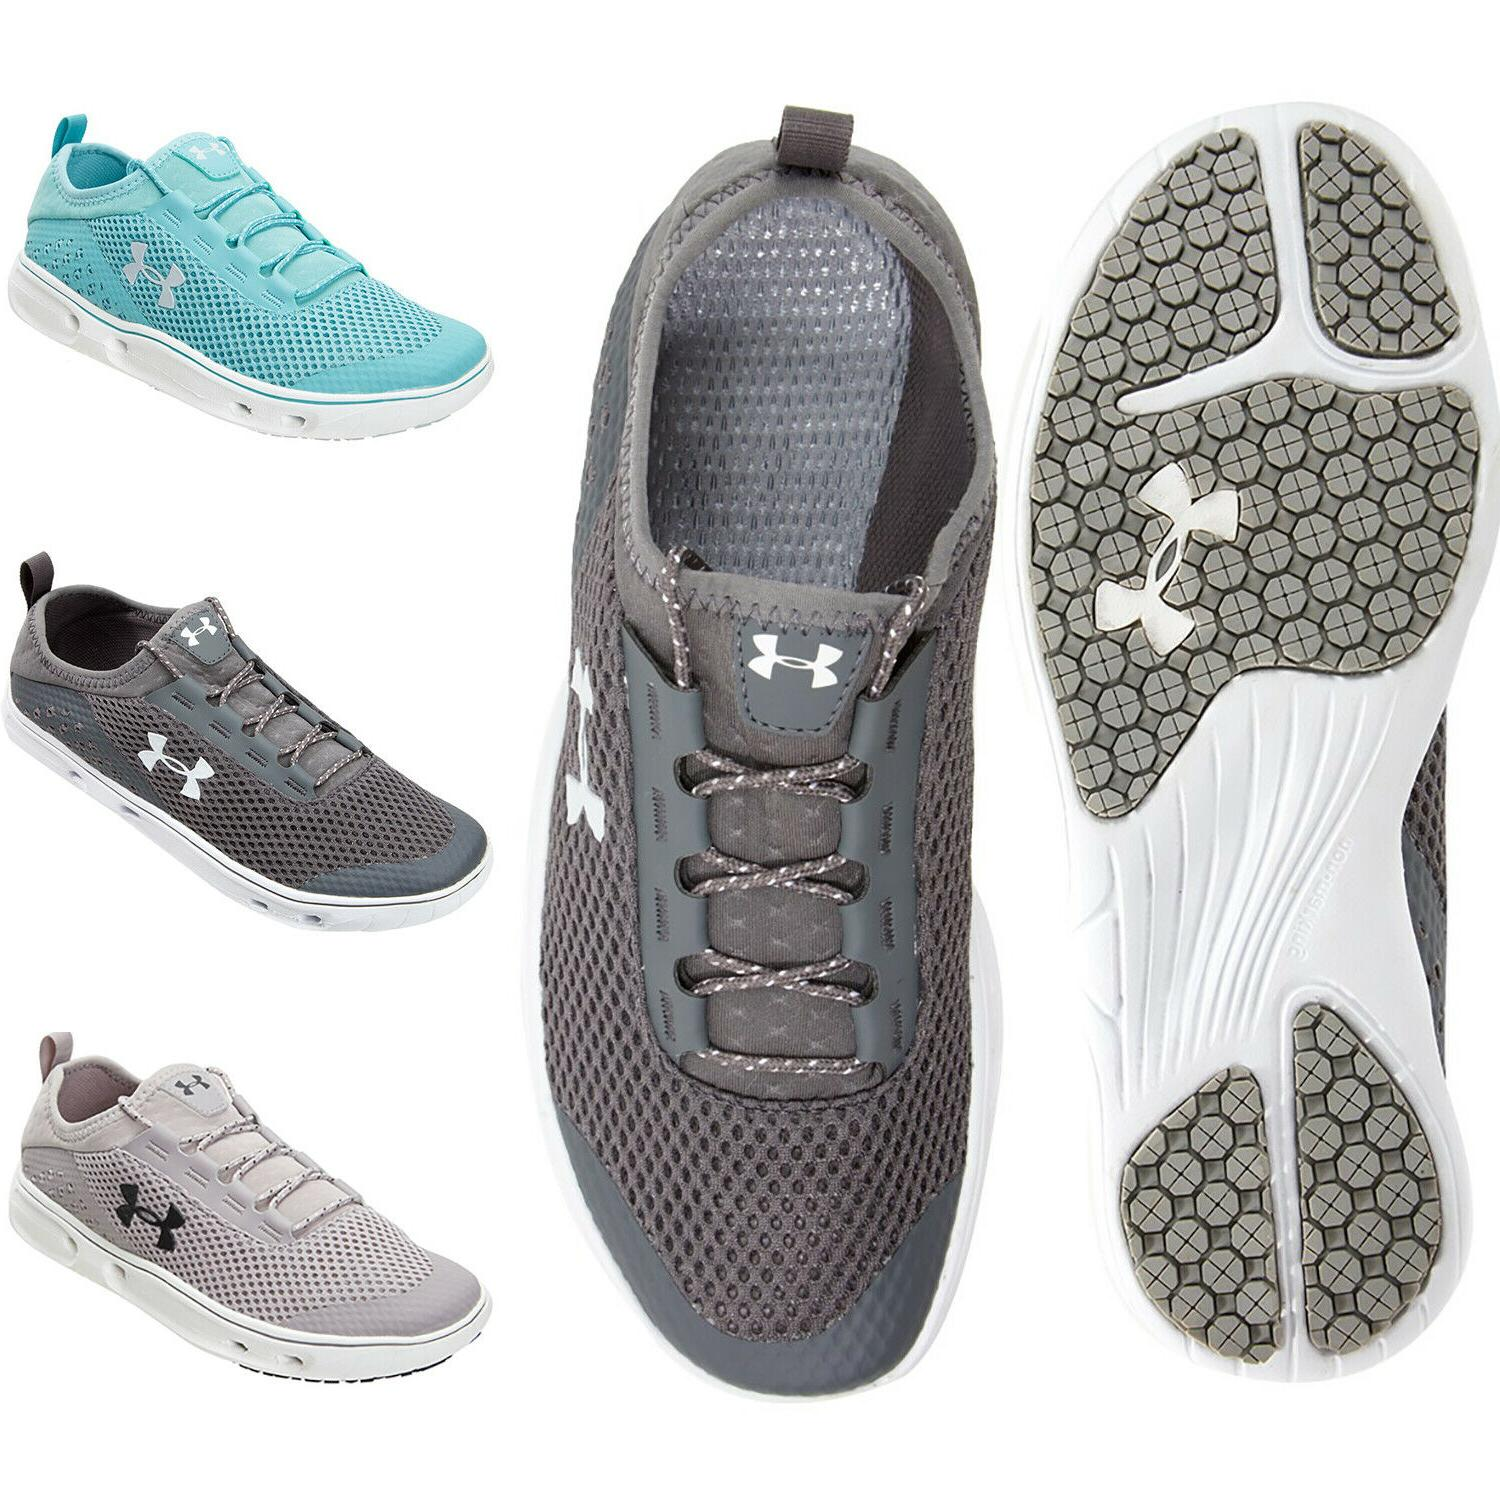 womens kilchis water shoes sneakers with drain